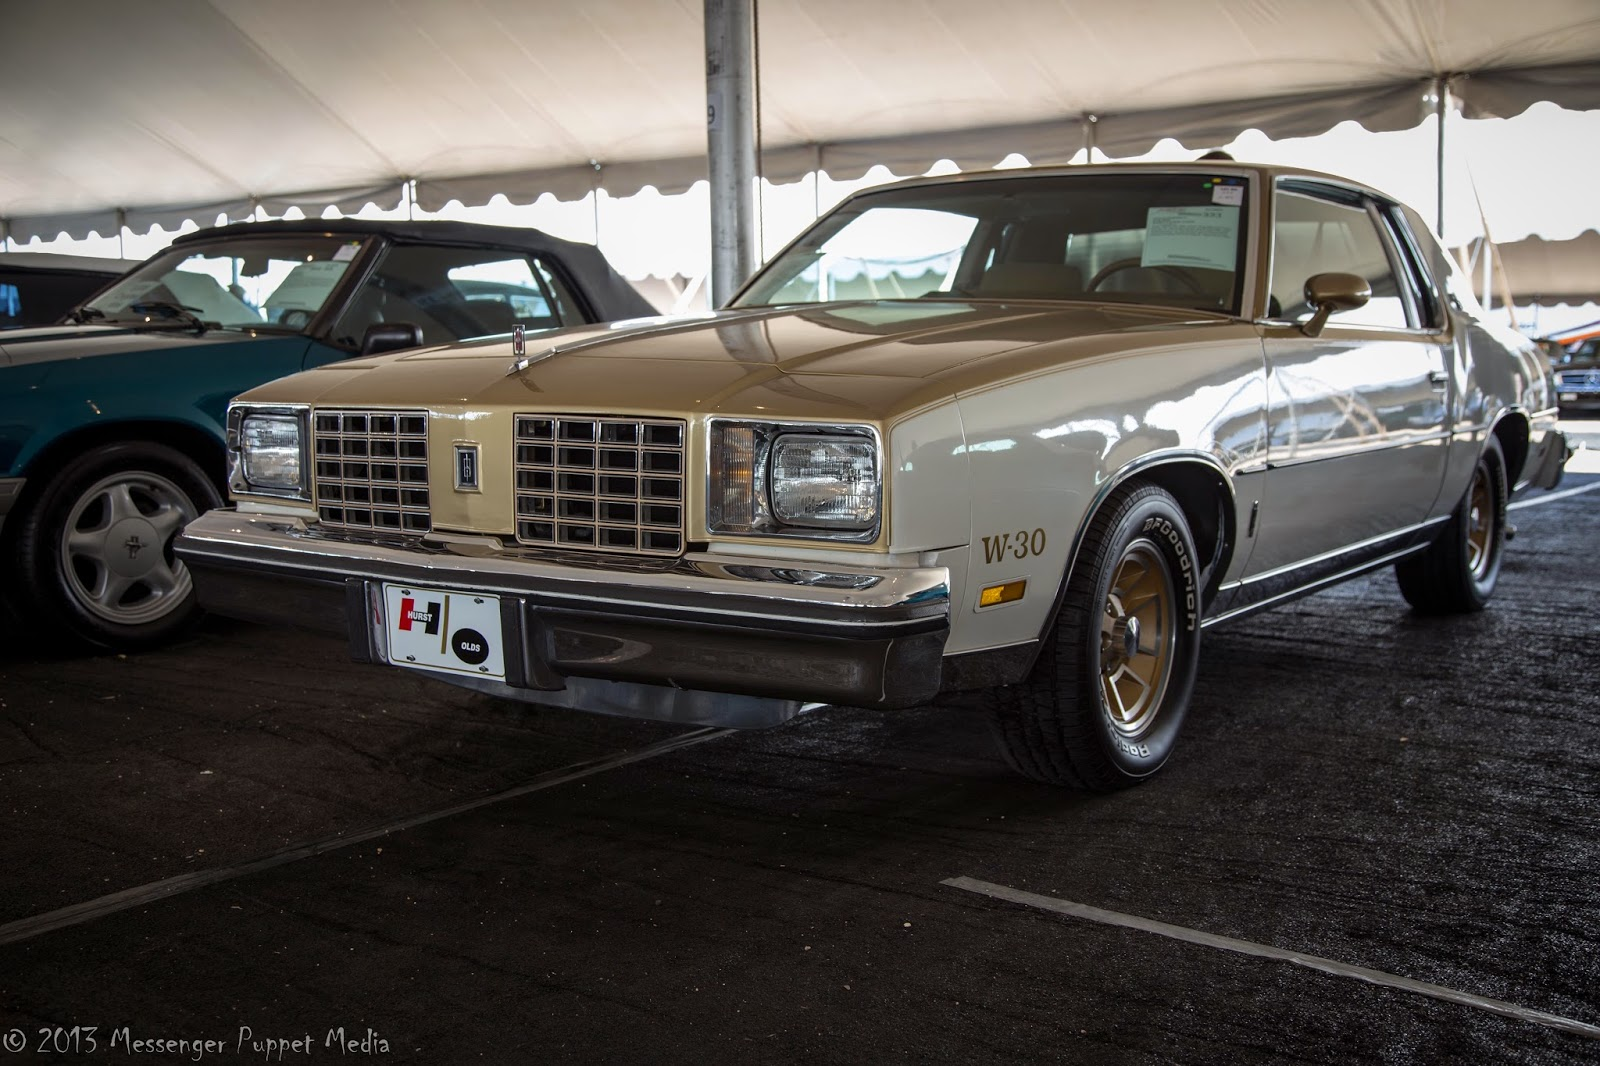 1979 OLDSMOBILE CUTLASS HURST 2 DOOR COUPE